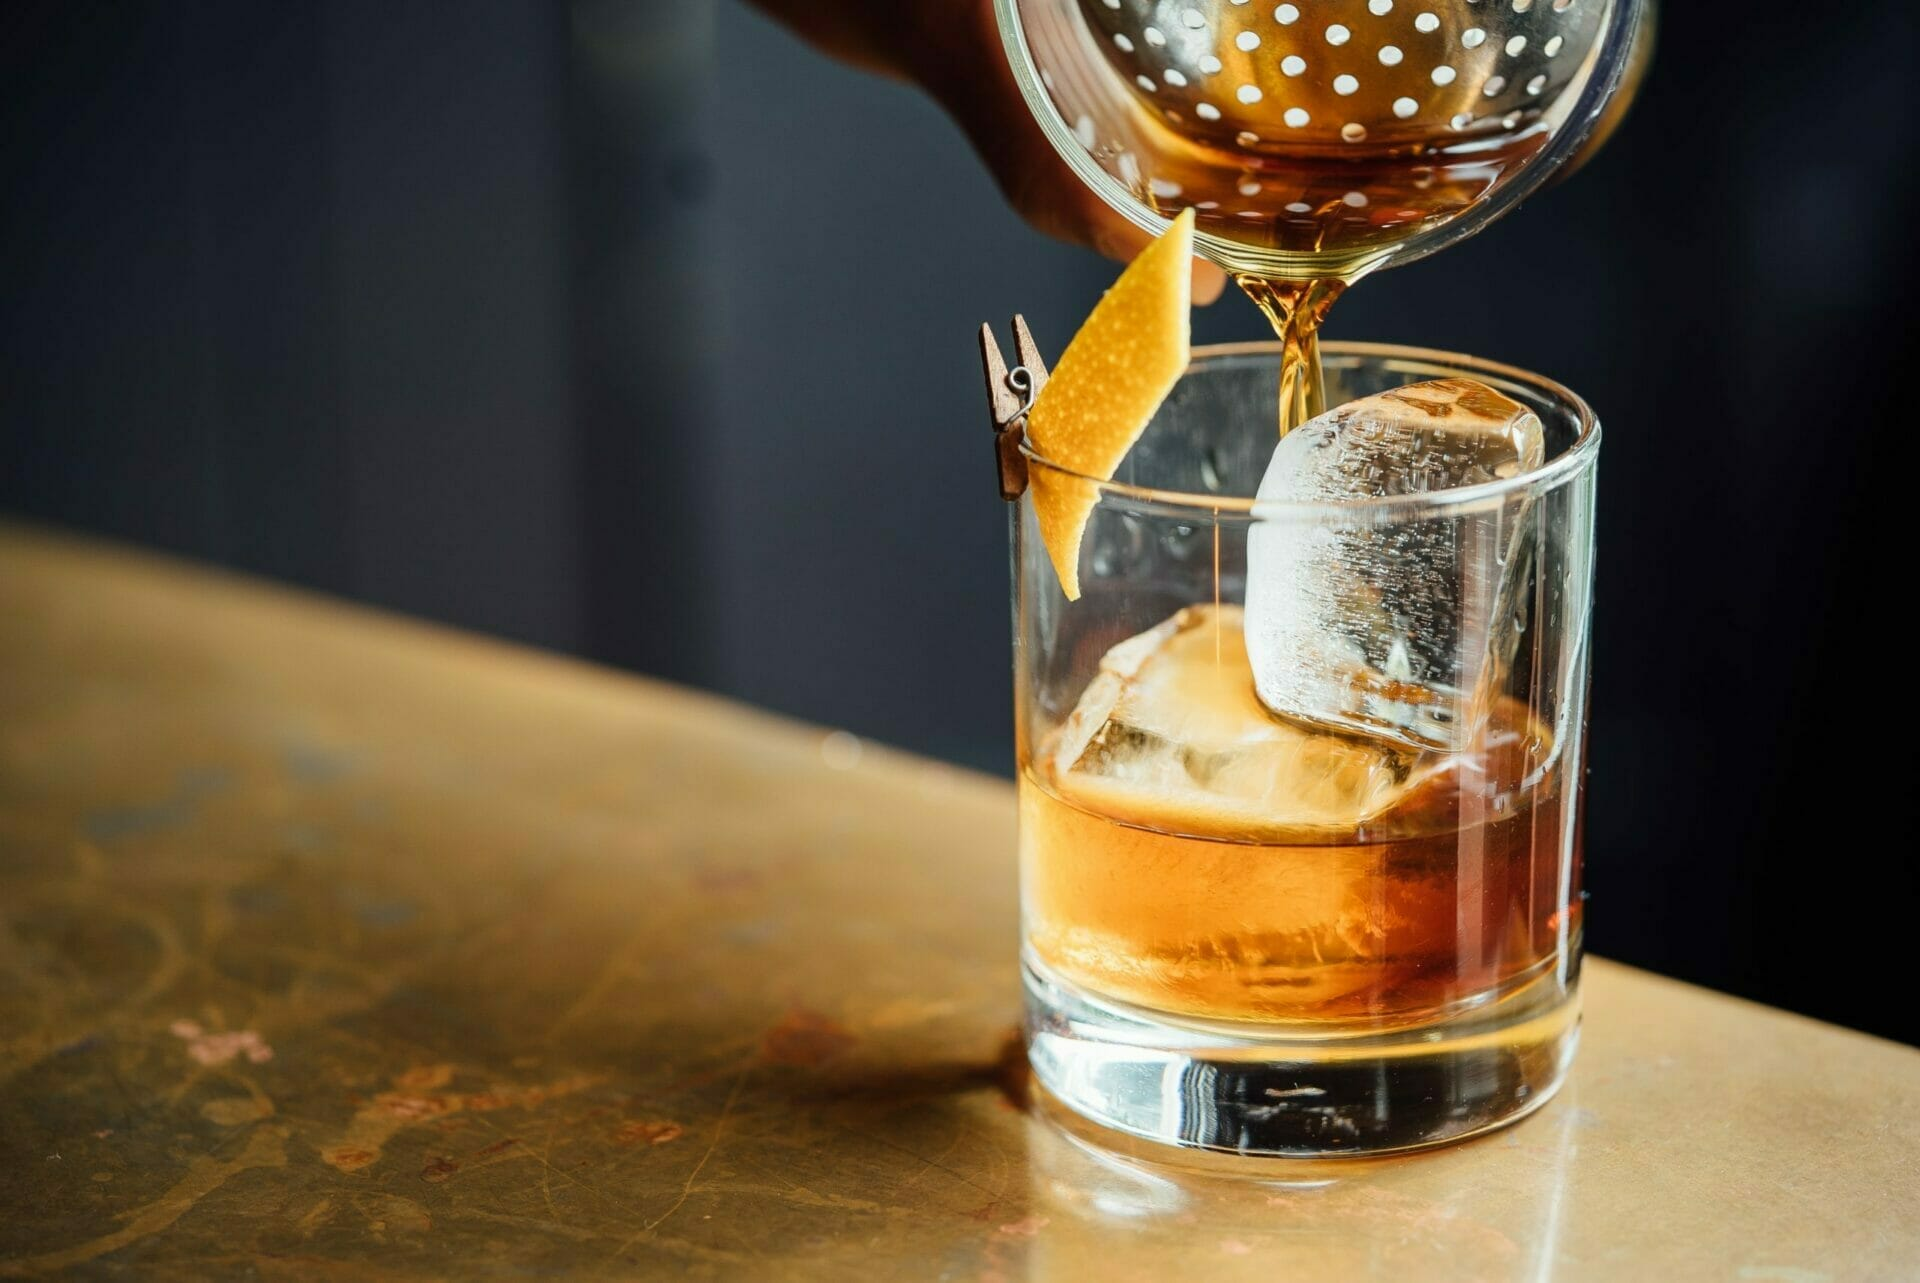 National Whiskey Sour Day puts a new twist on a cocktail classic